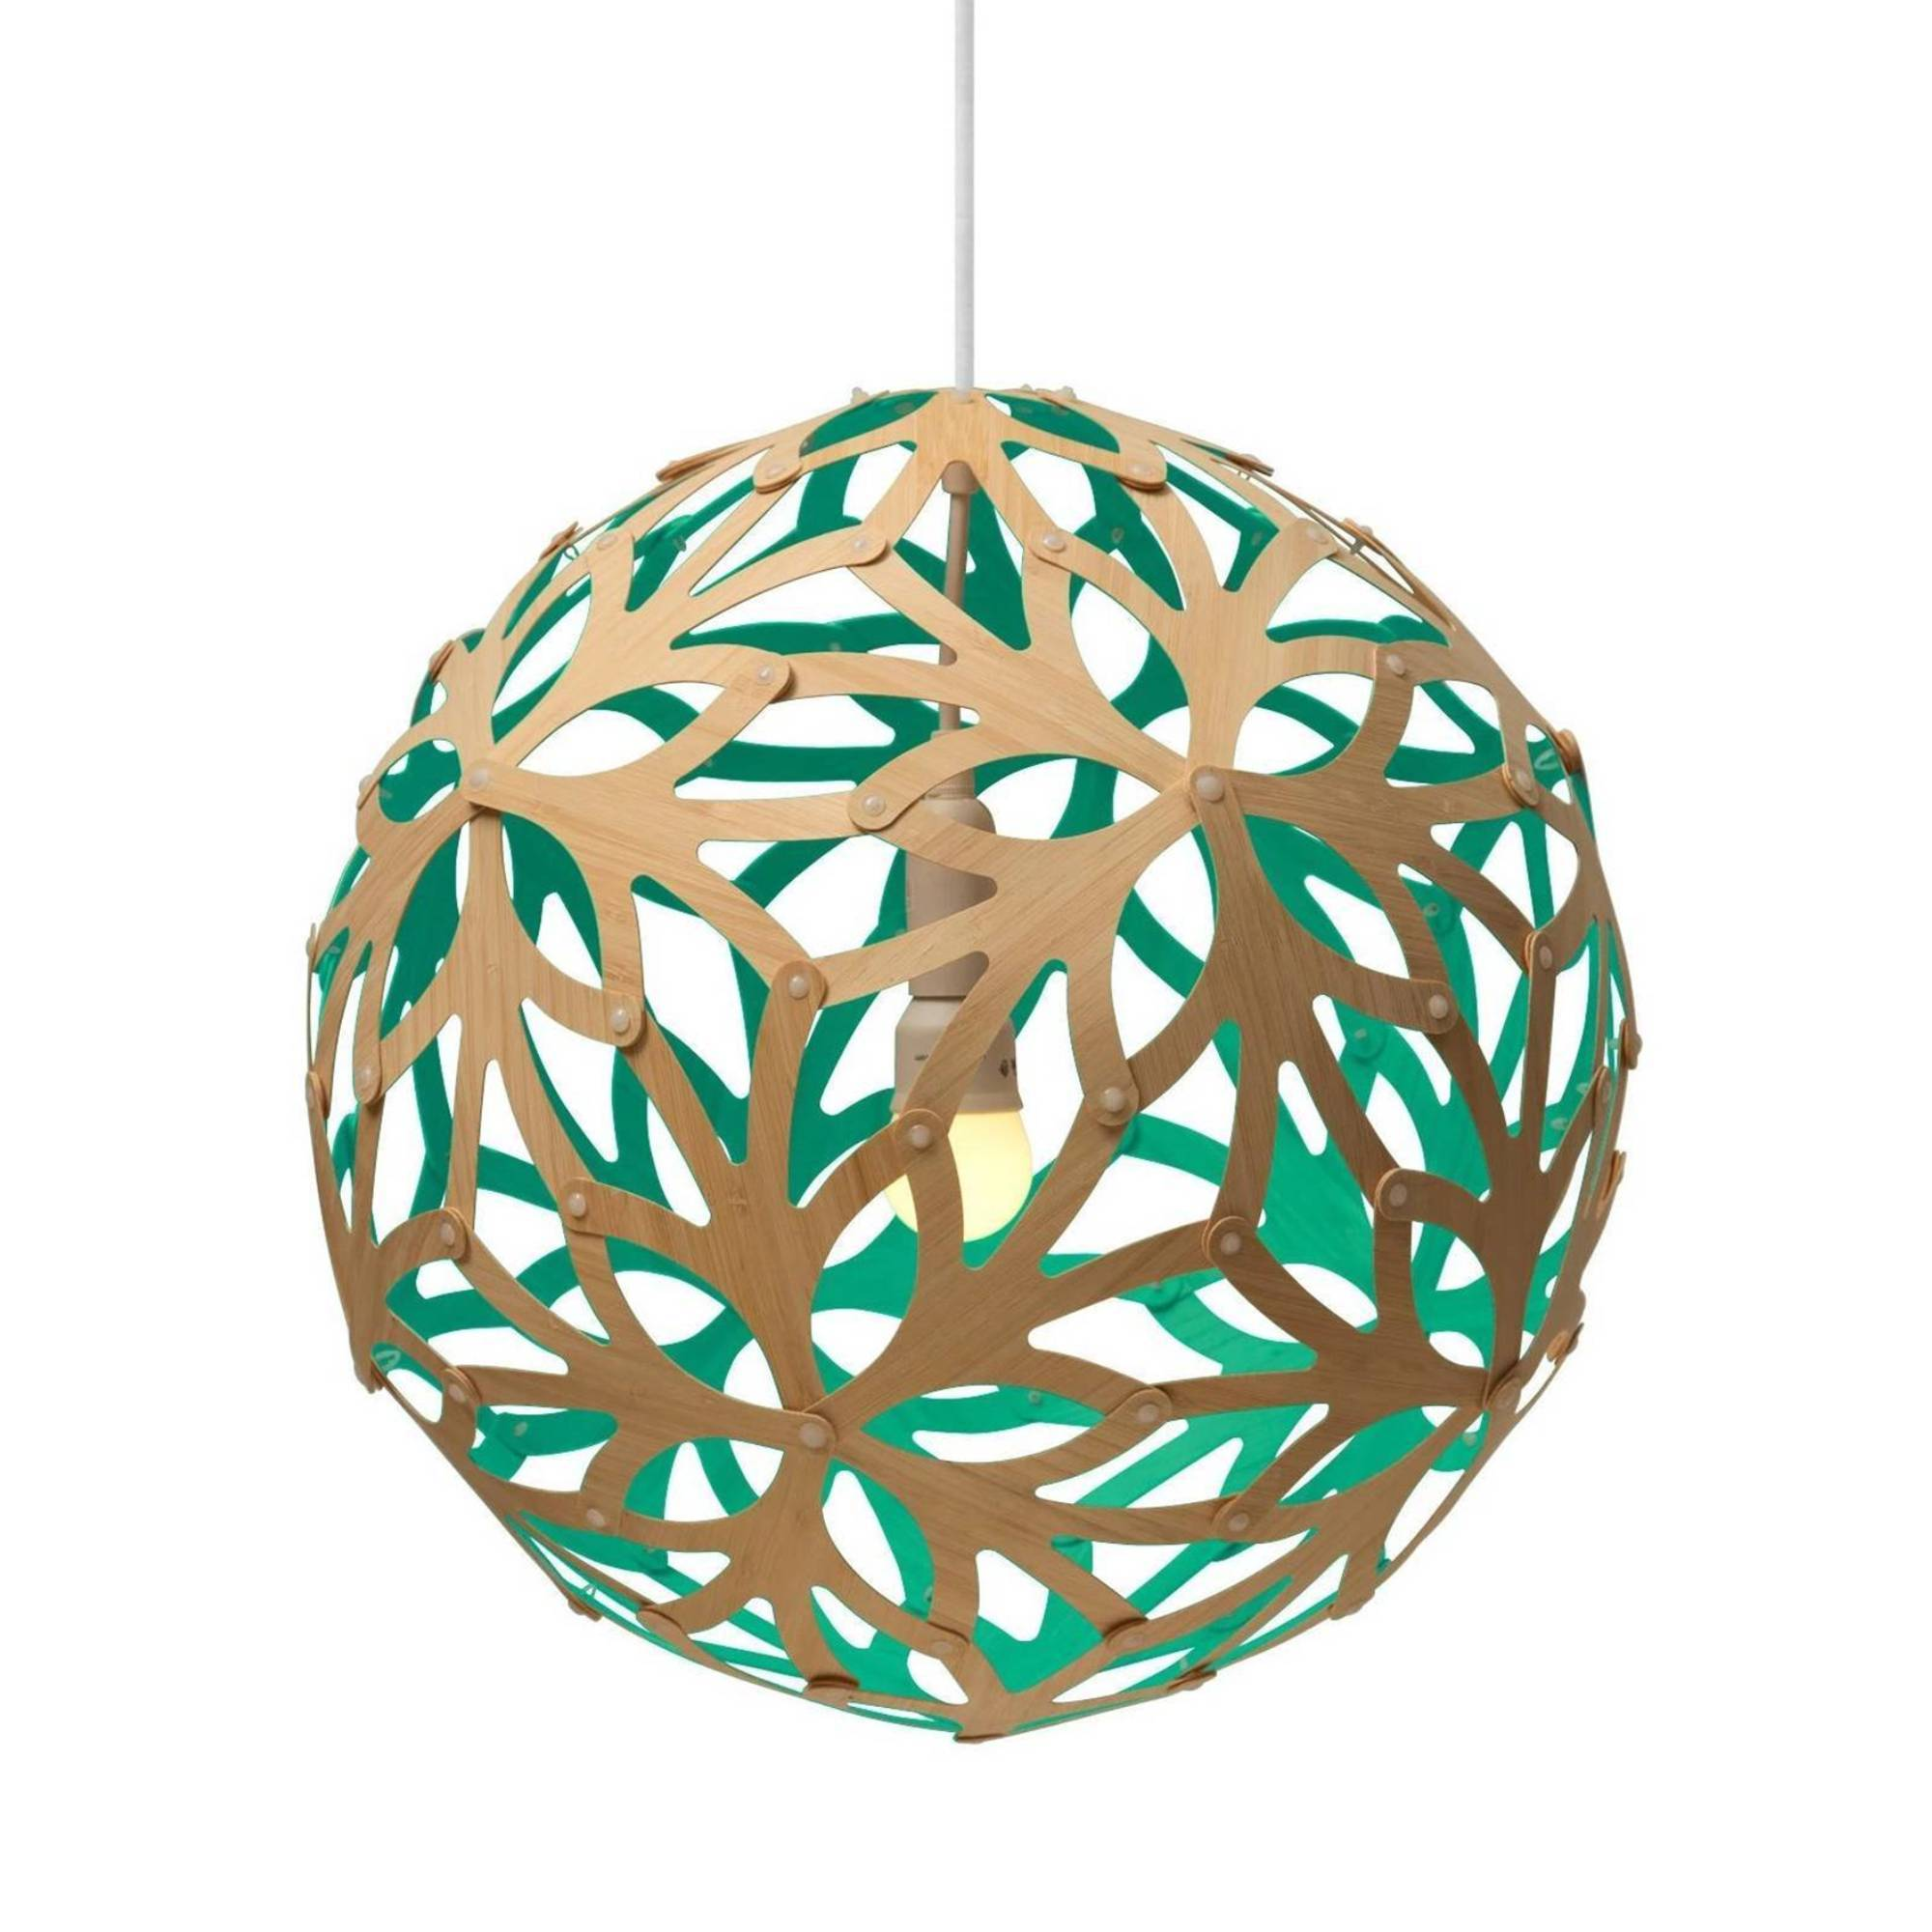 Floral Pendant Light: 800 + Aqua